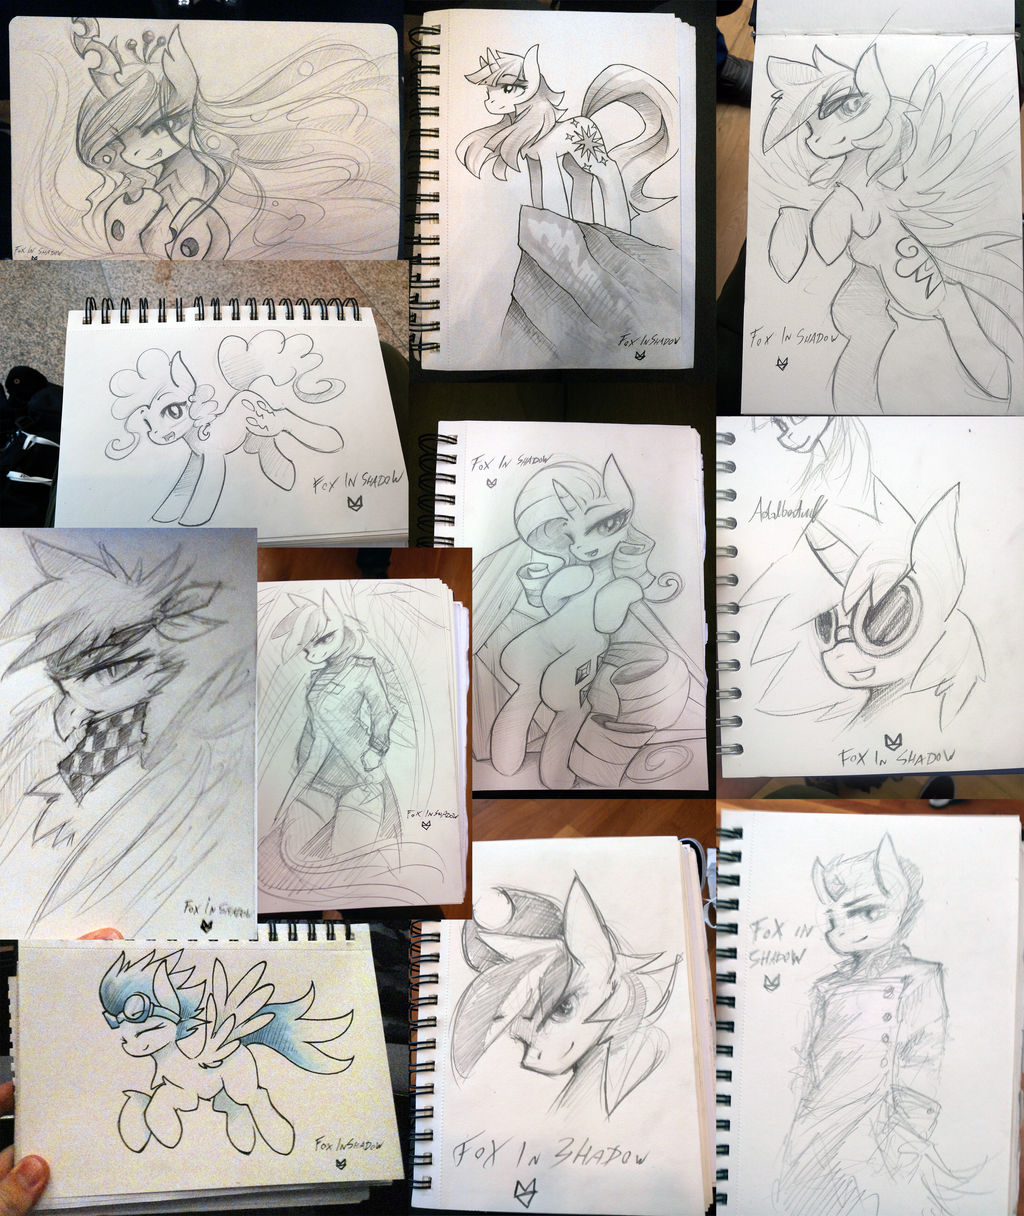 Galacon requests